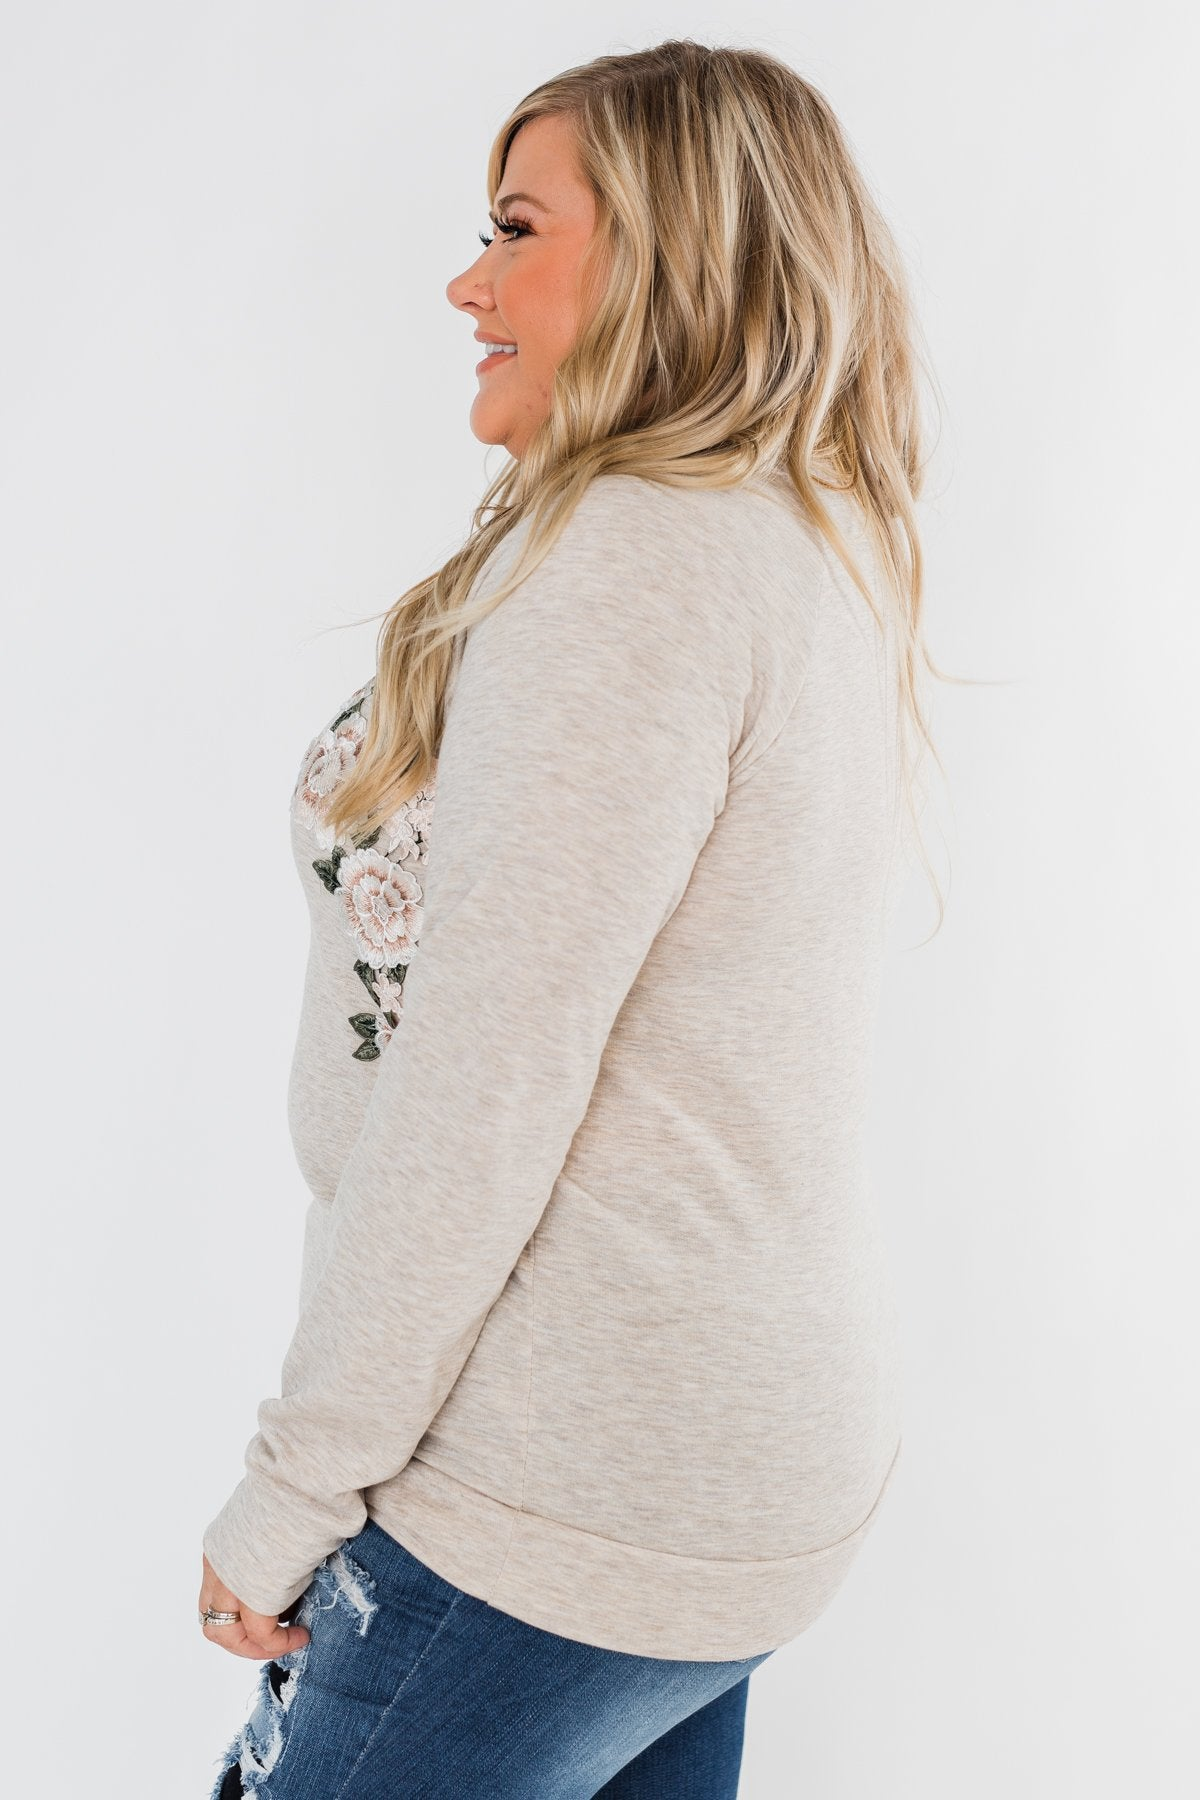 Floral Appliqué Pullover Top- Heathered Oatmeal